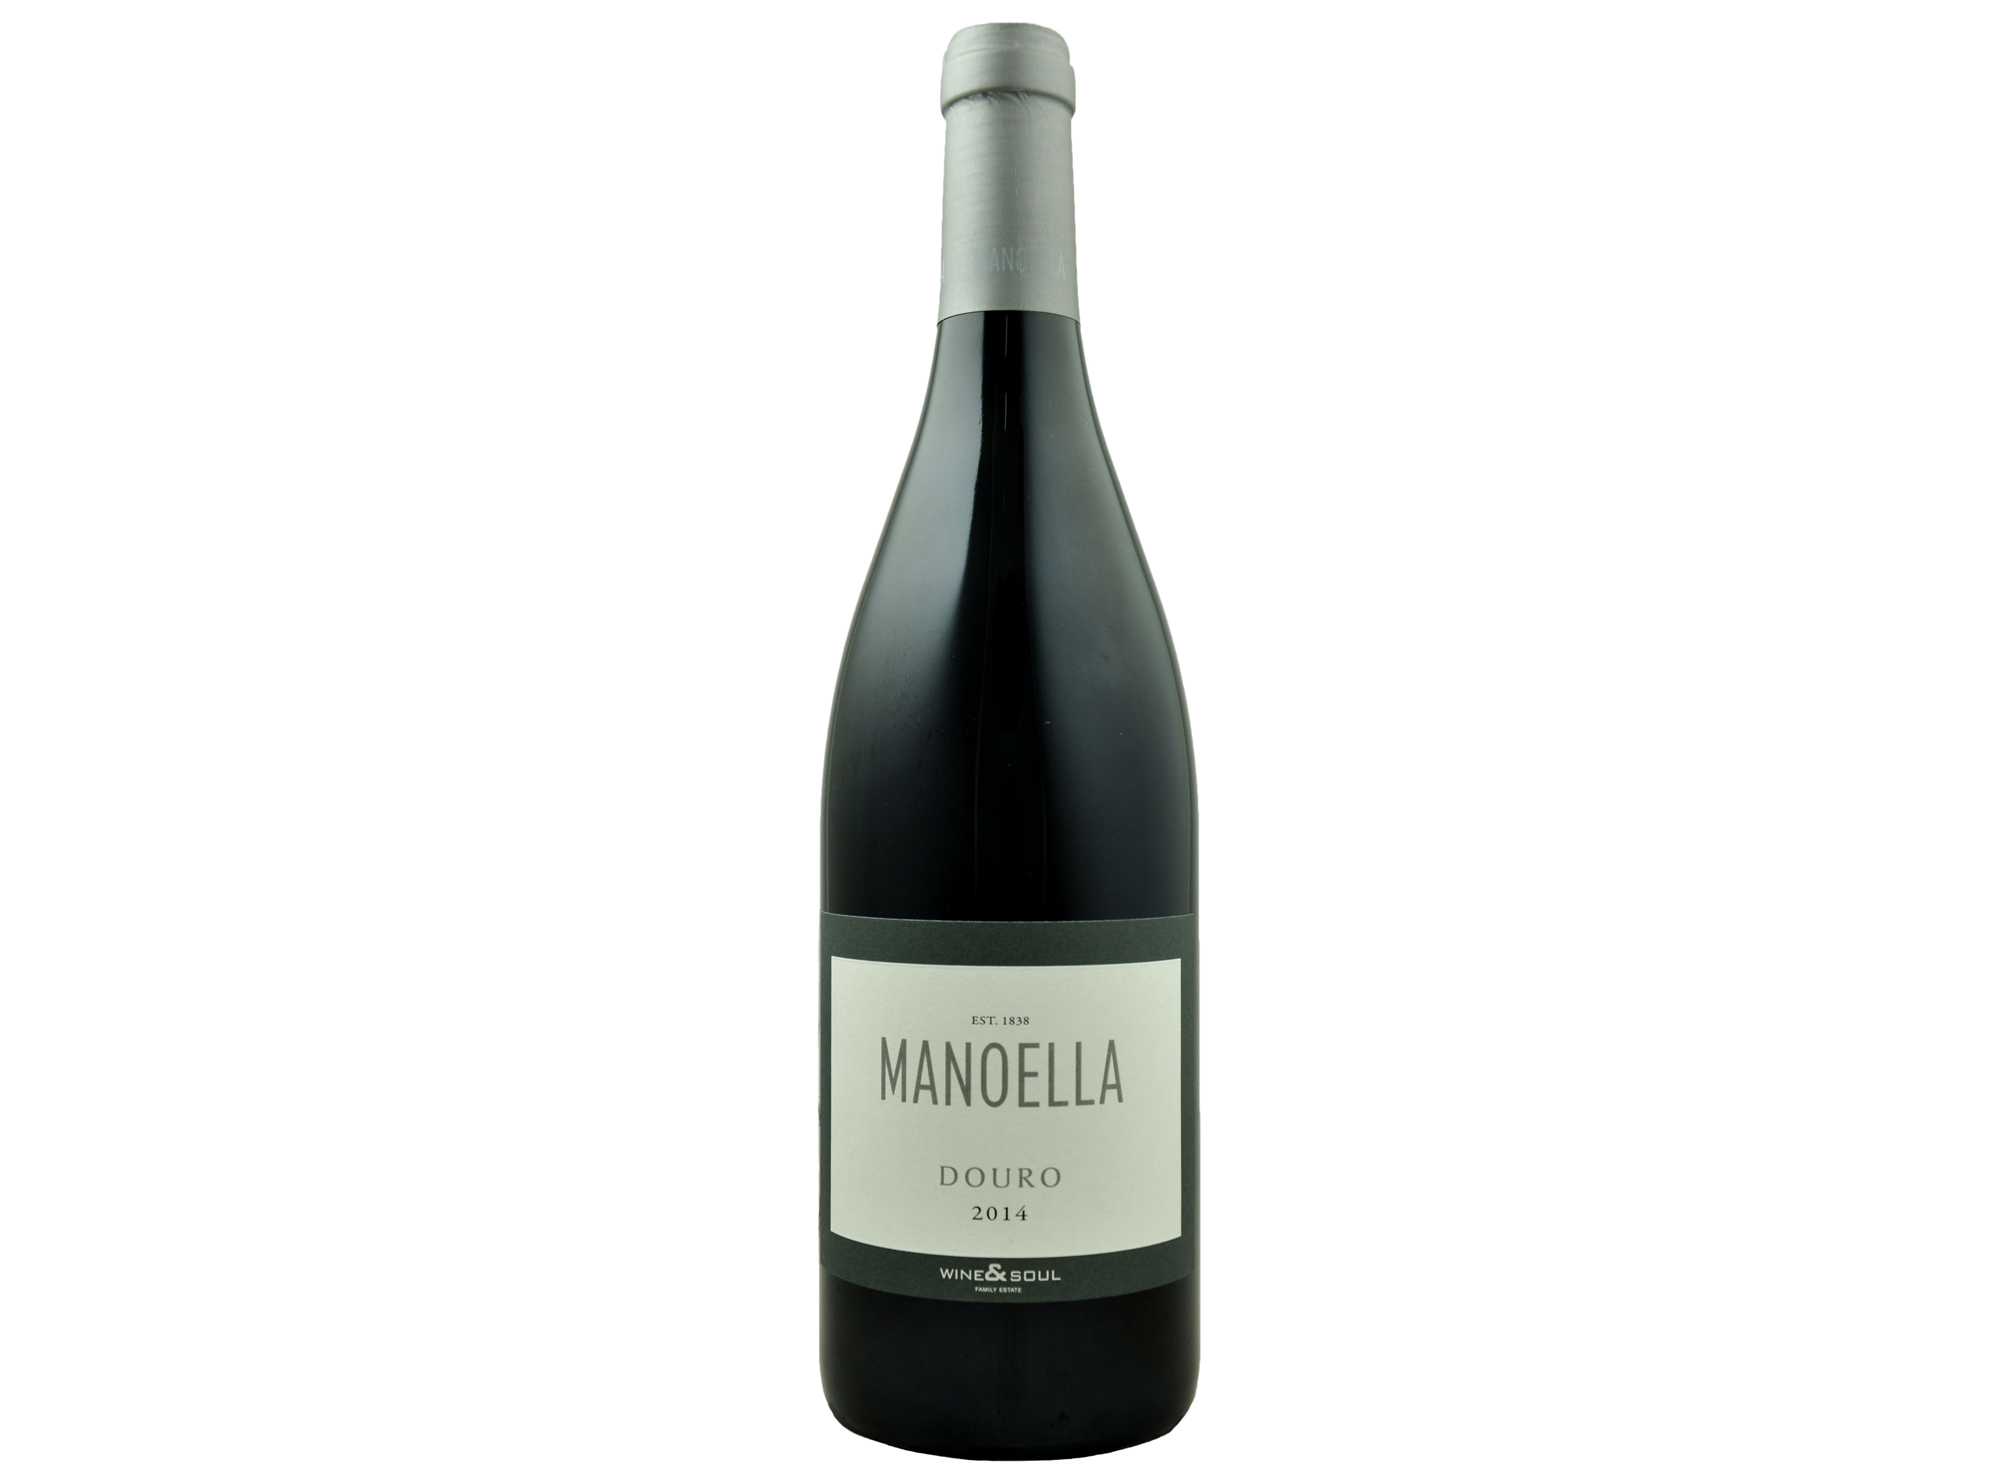 Manoella Wine & Soul, Douro, Portugal